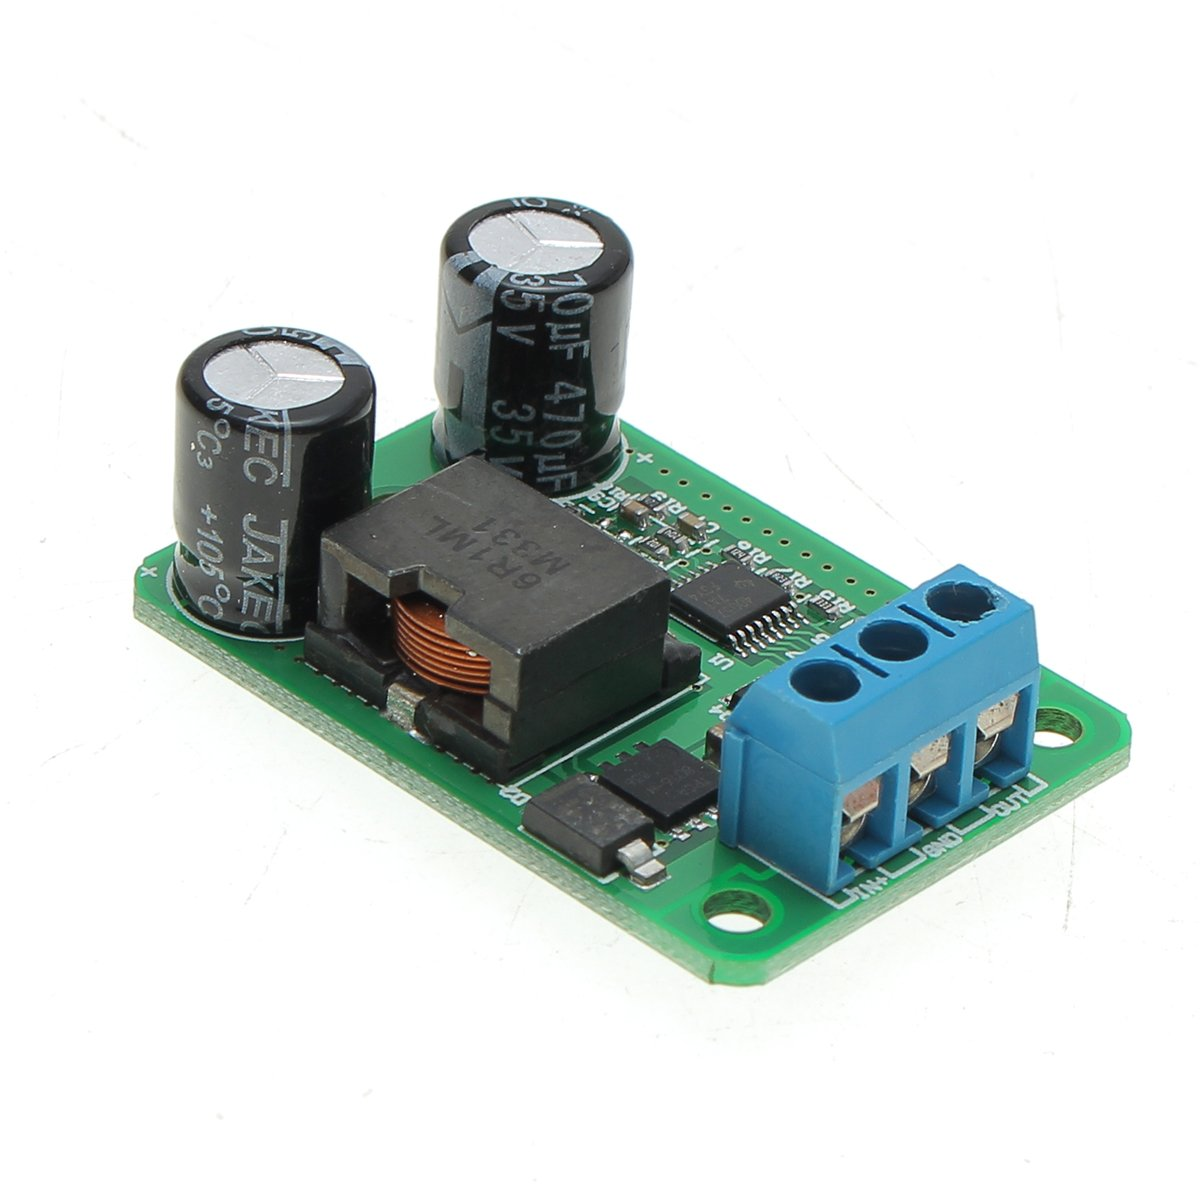 9V-35V To 5V 5A 25W DC-DC Buck Synchronous Rectification Step Down Power Supply Converter Module